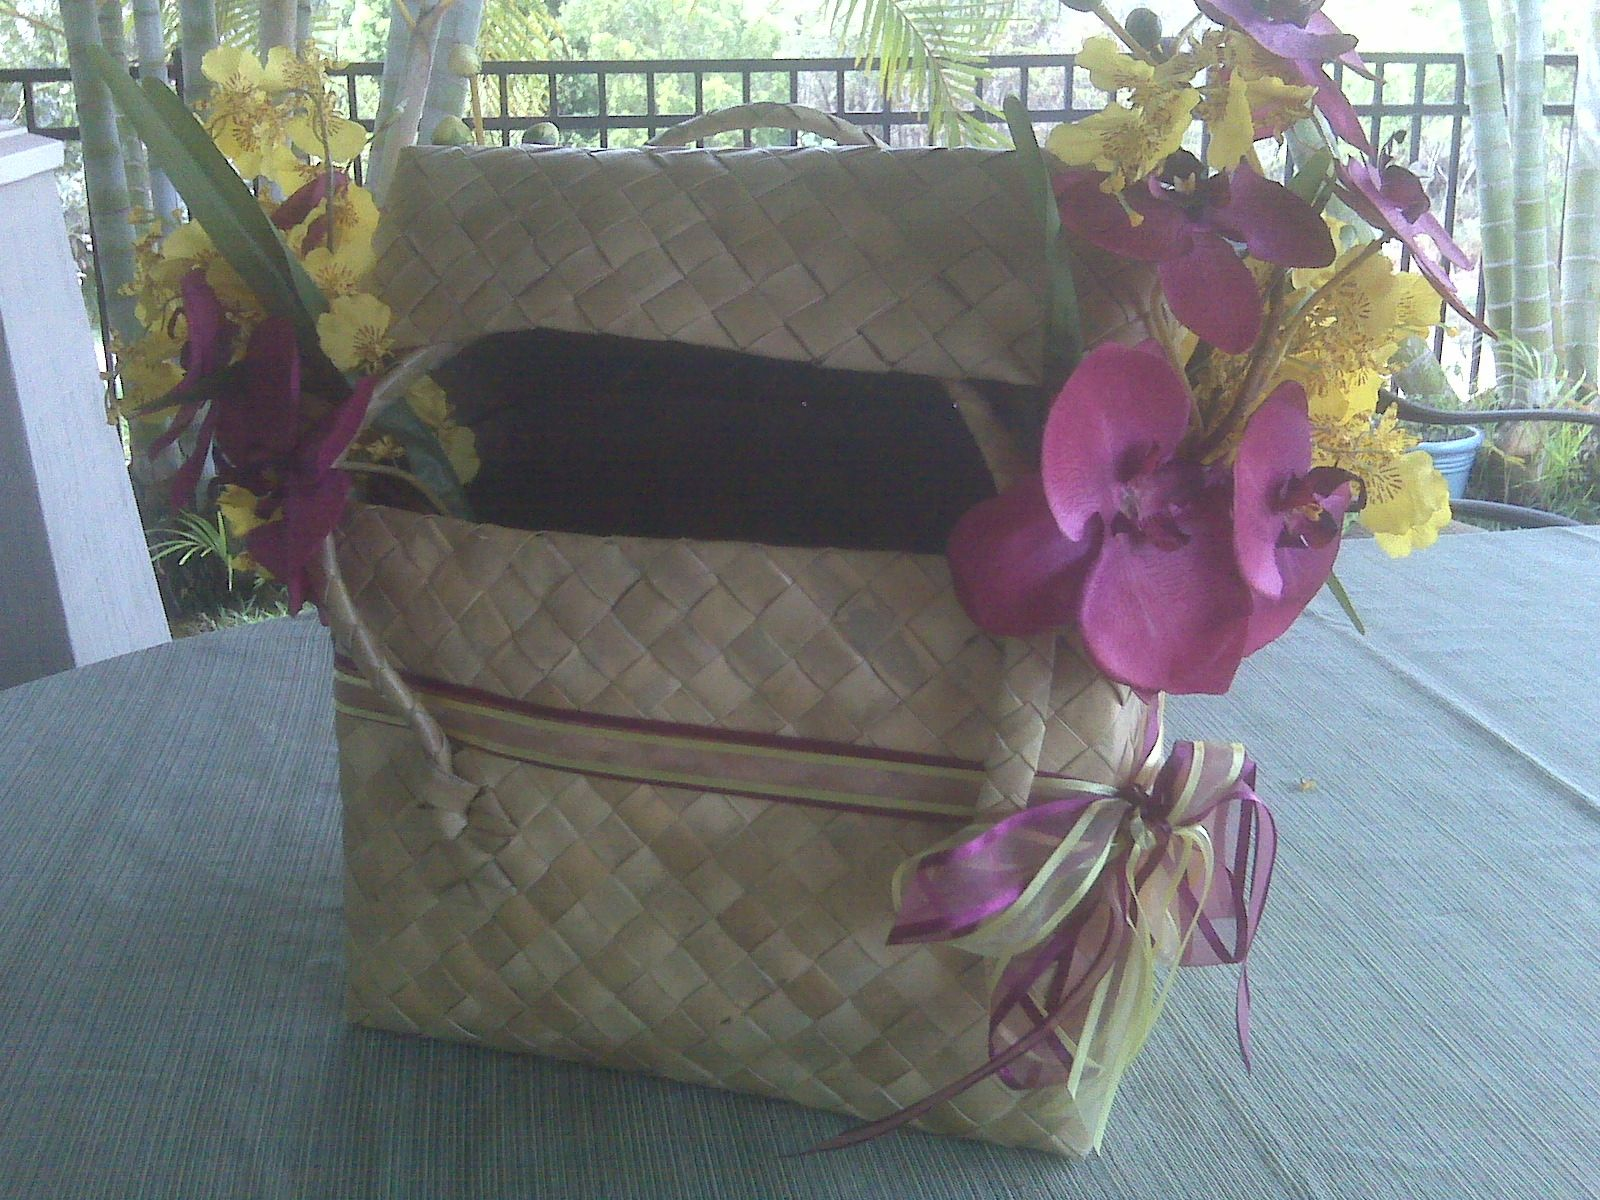 Hawaiian Wedding Gift Ideas: This Is A Card Box Idea For A Hawaiian Wedding. The Basket